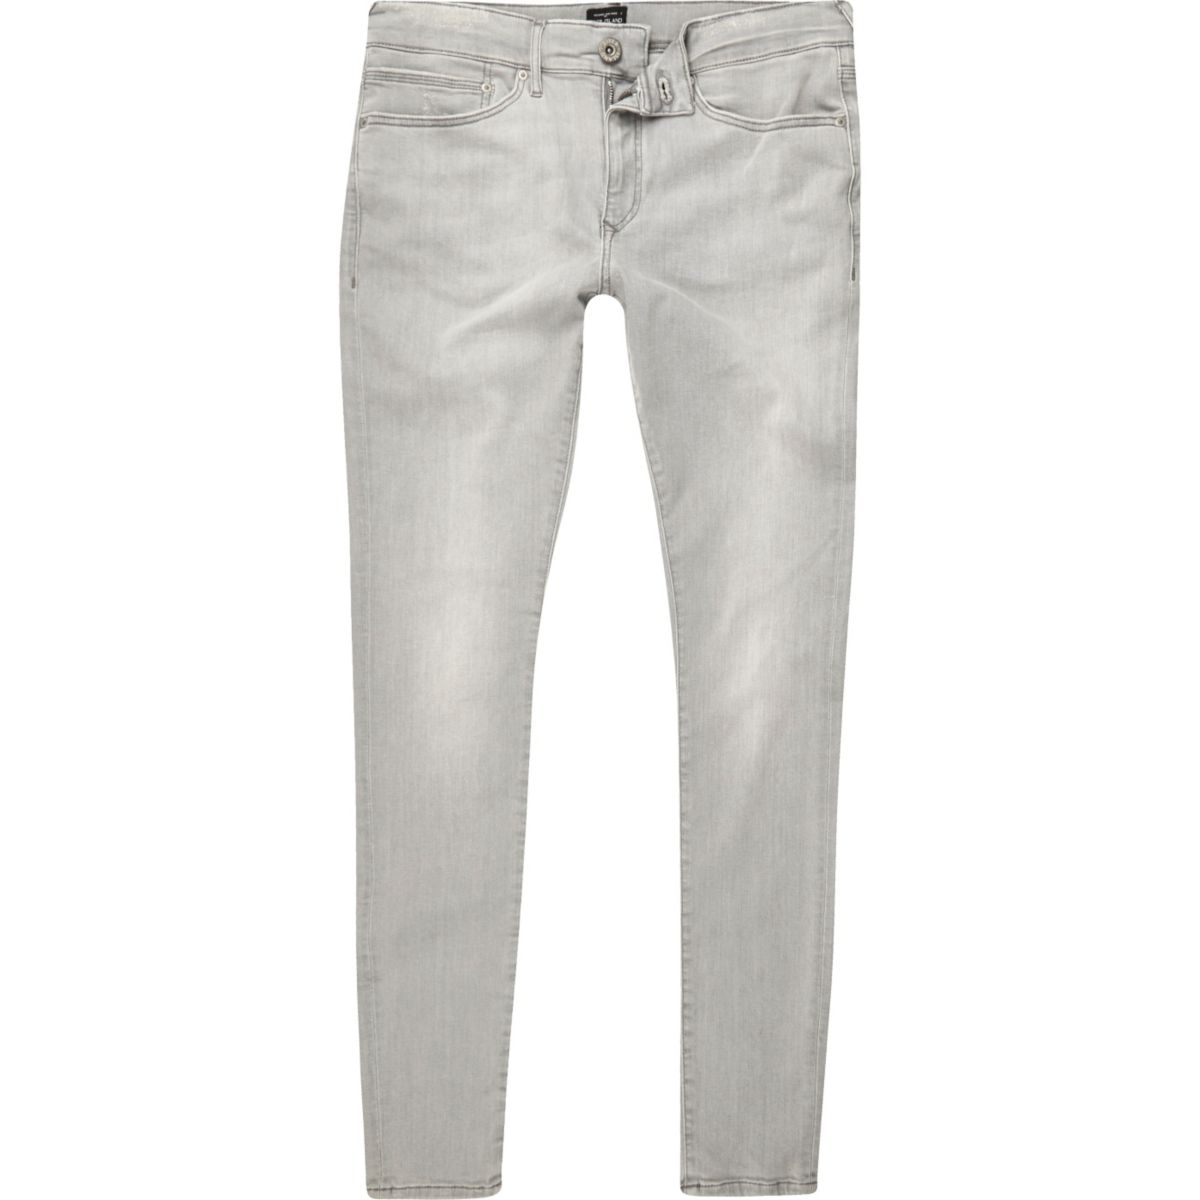 Grey wash Ollie spray on super skinny jeans